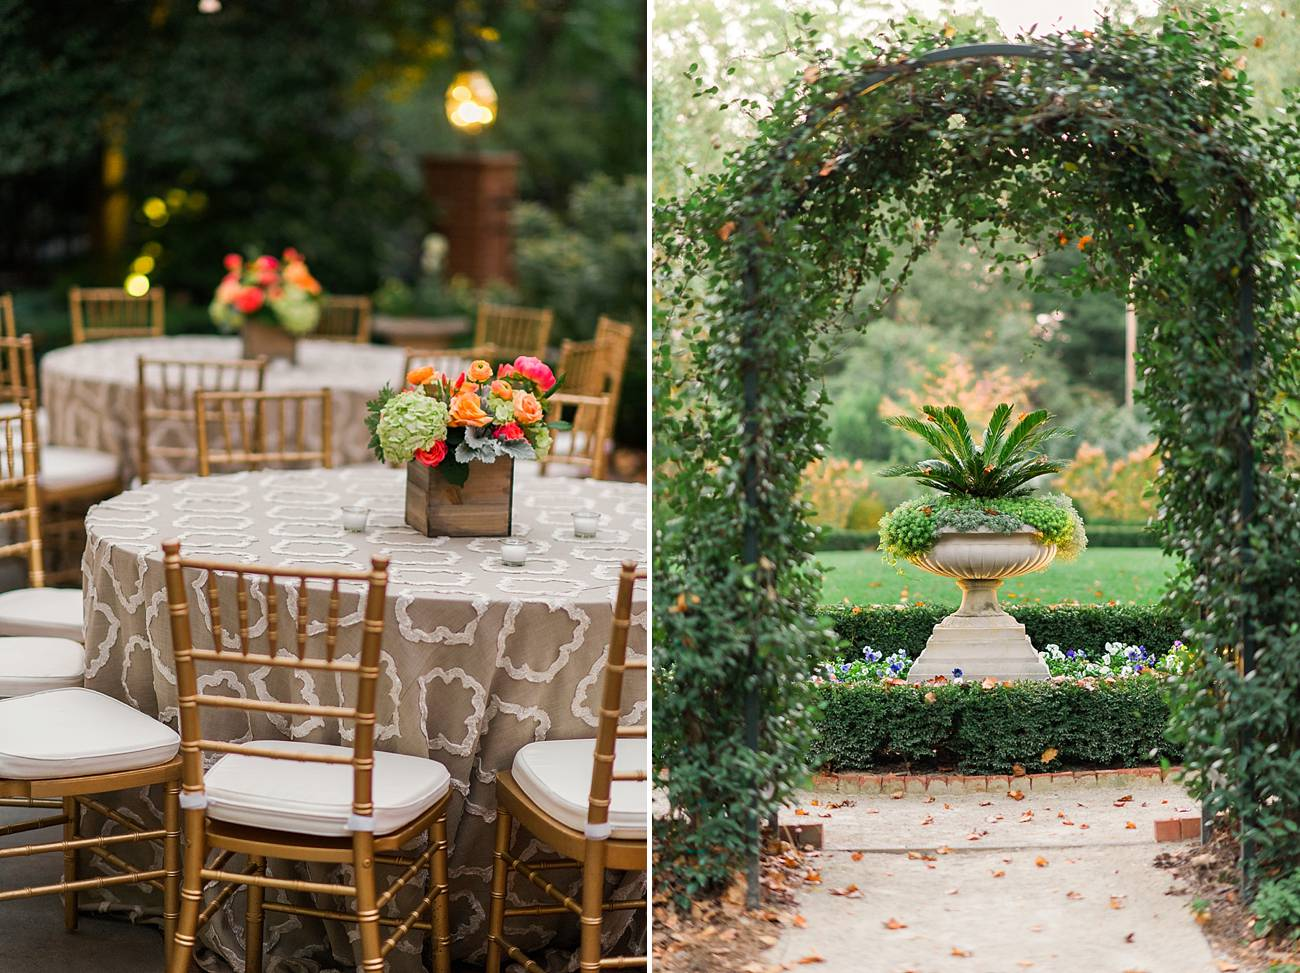 Topiaries and table settings at the Duke Mansion